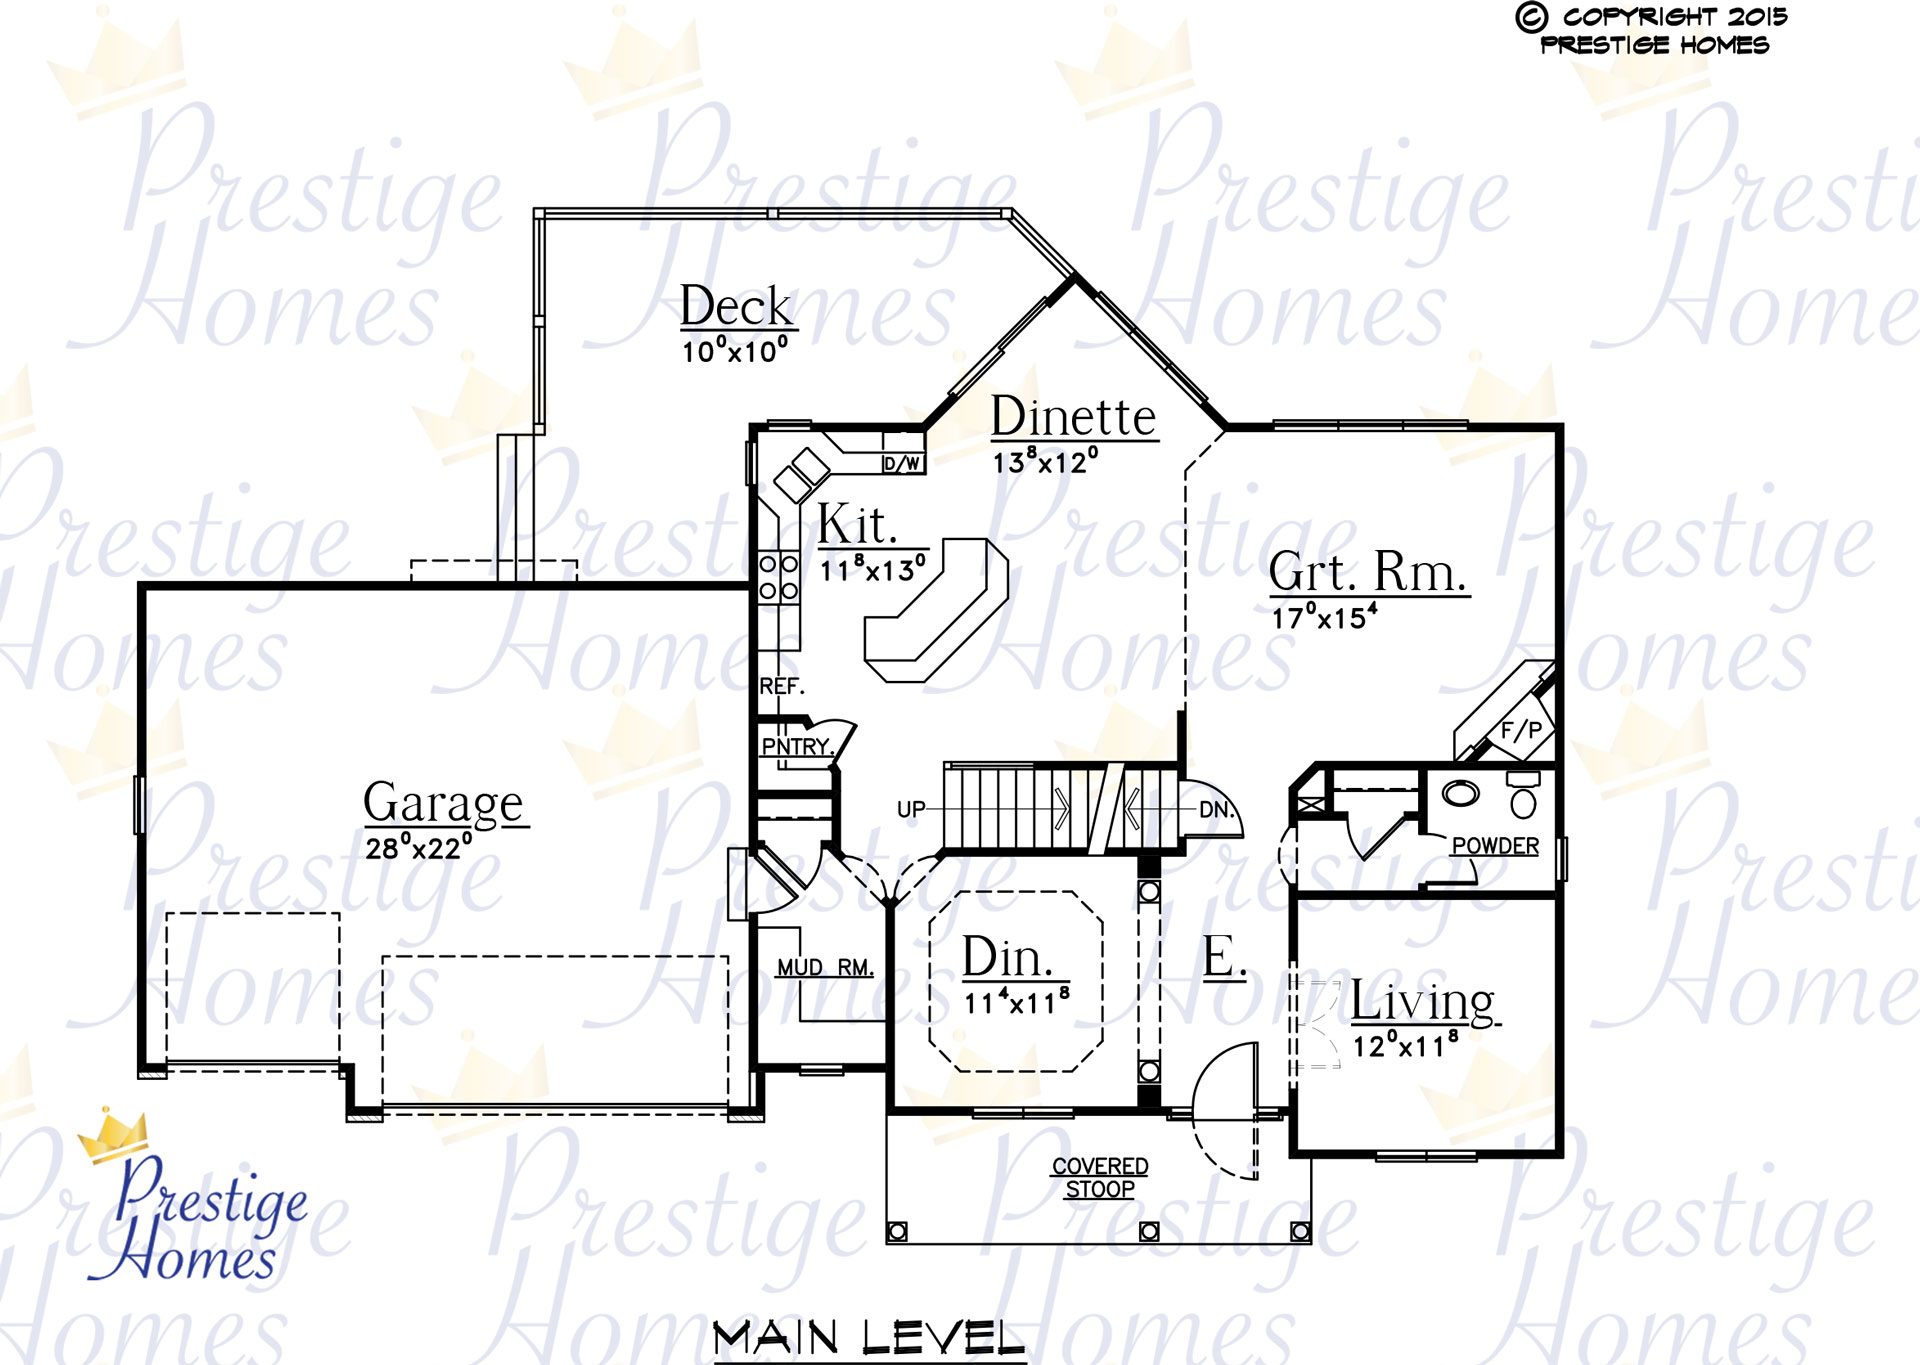 Prestige Homes - Floor Plan - Mitchel - Original - Main